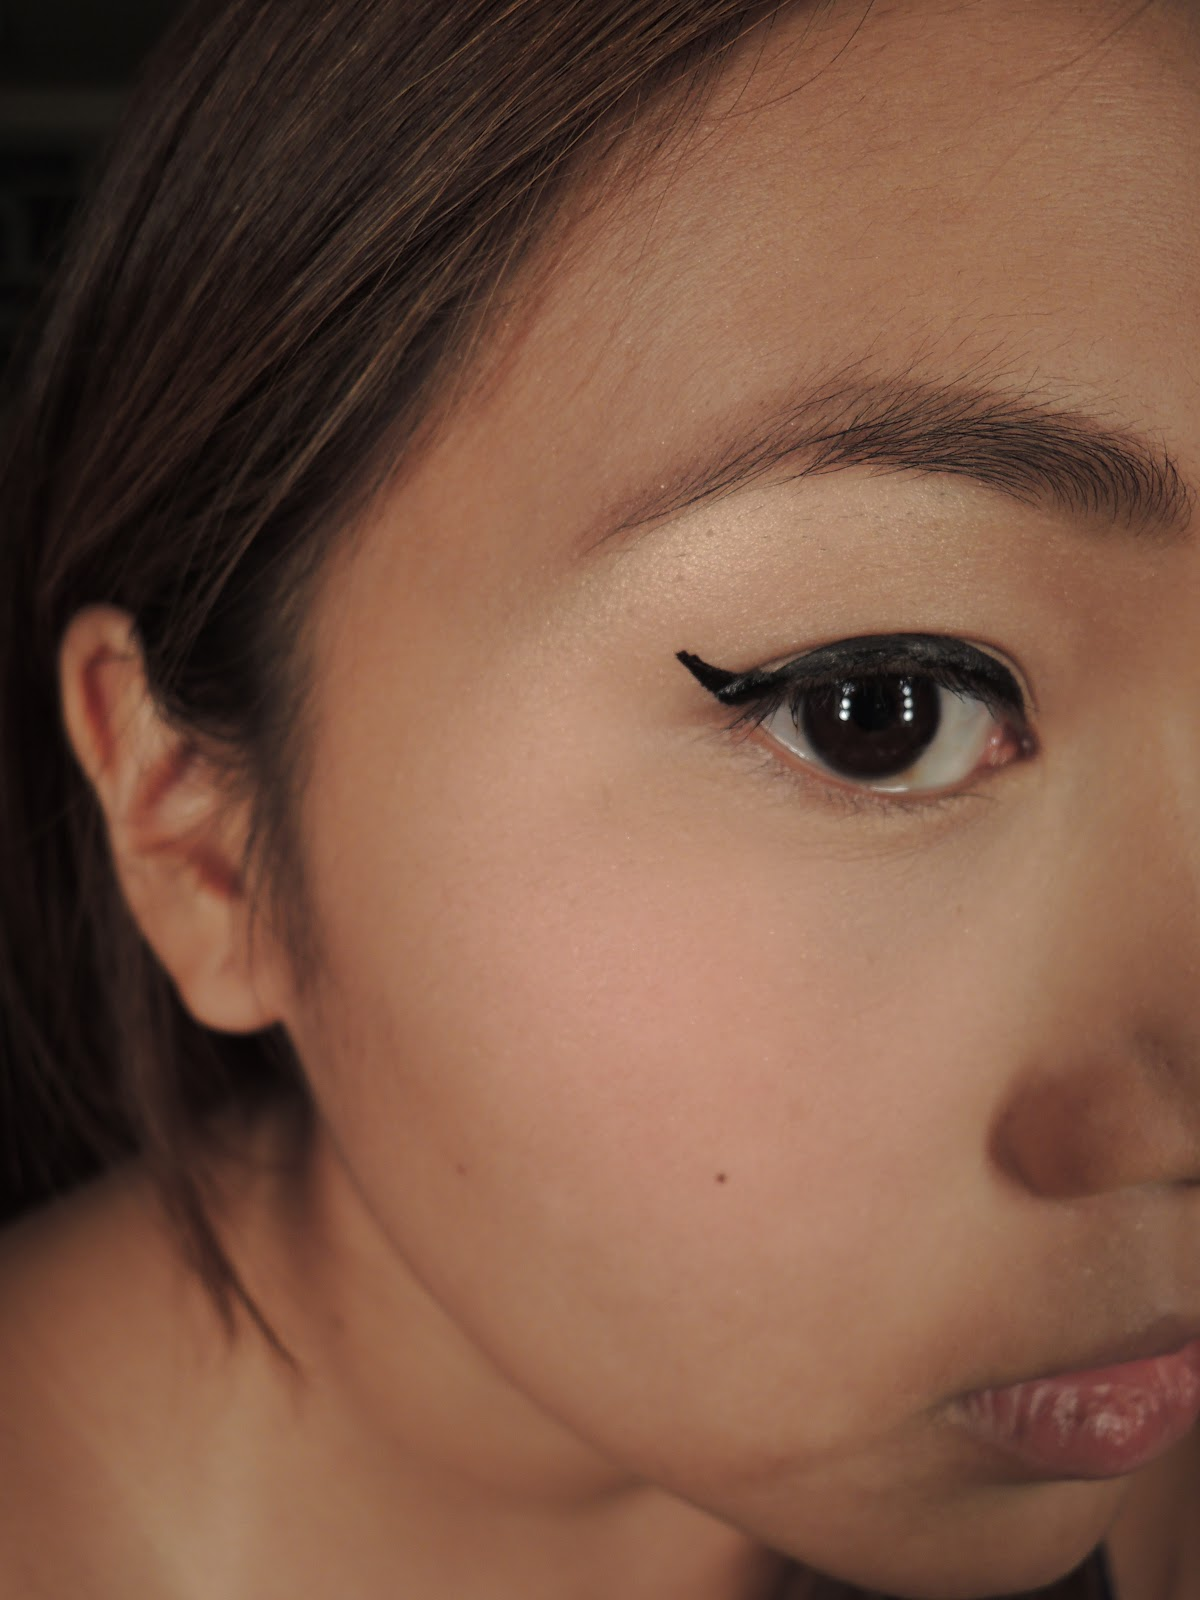 Winged Eyeliner Tutorial Step By Step: Make Up By Gex Garcia: HOW TO: Winged Eyeliner With L